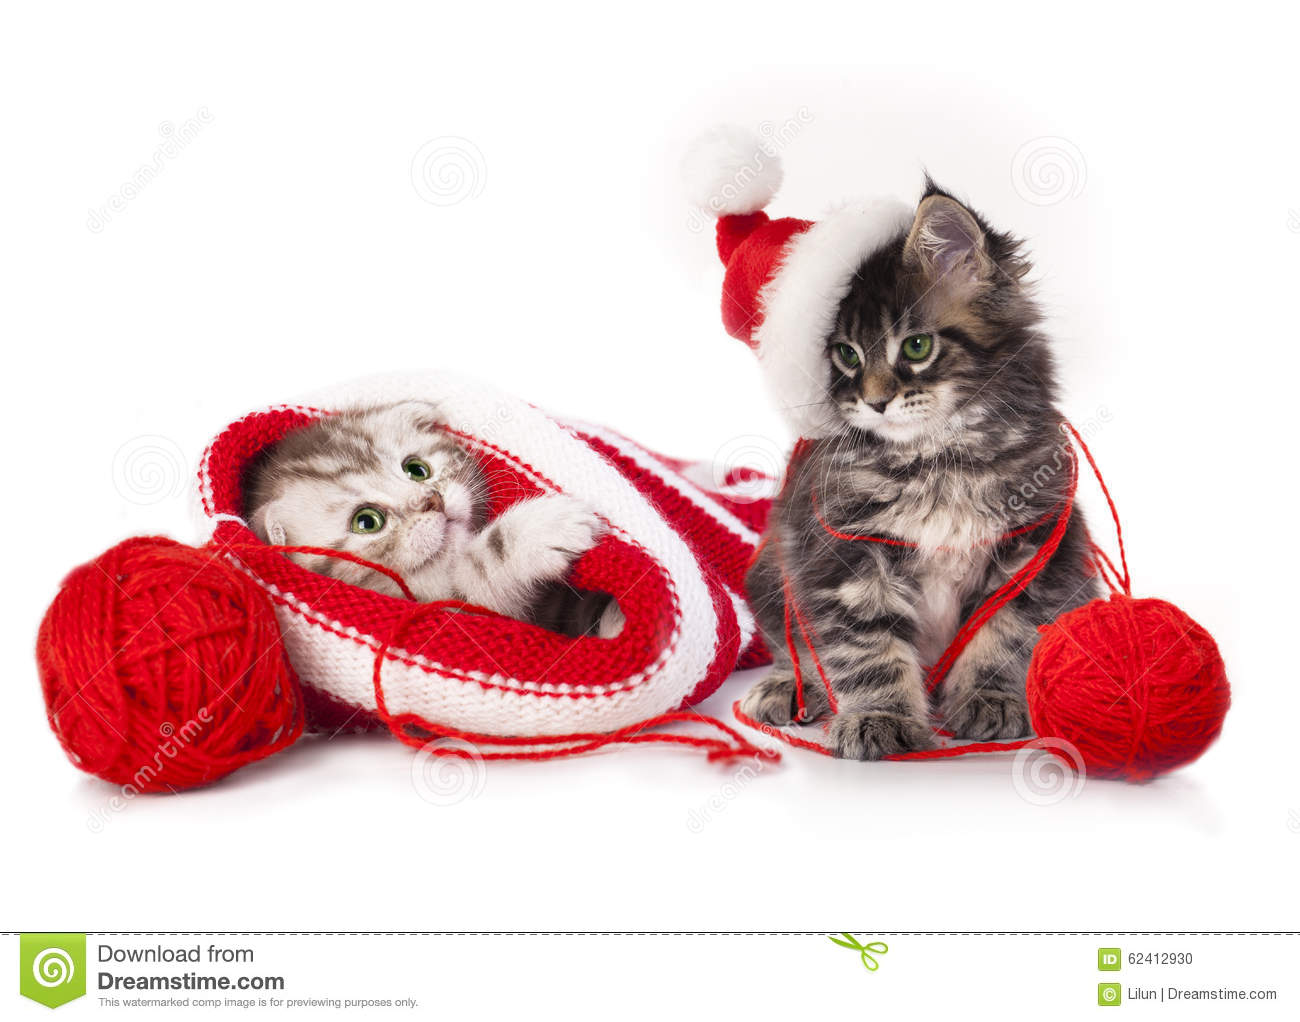 kittens With Christmas decorations